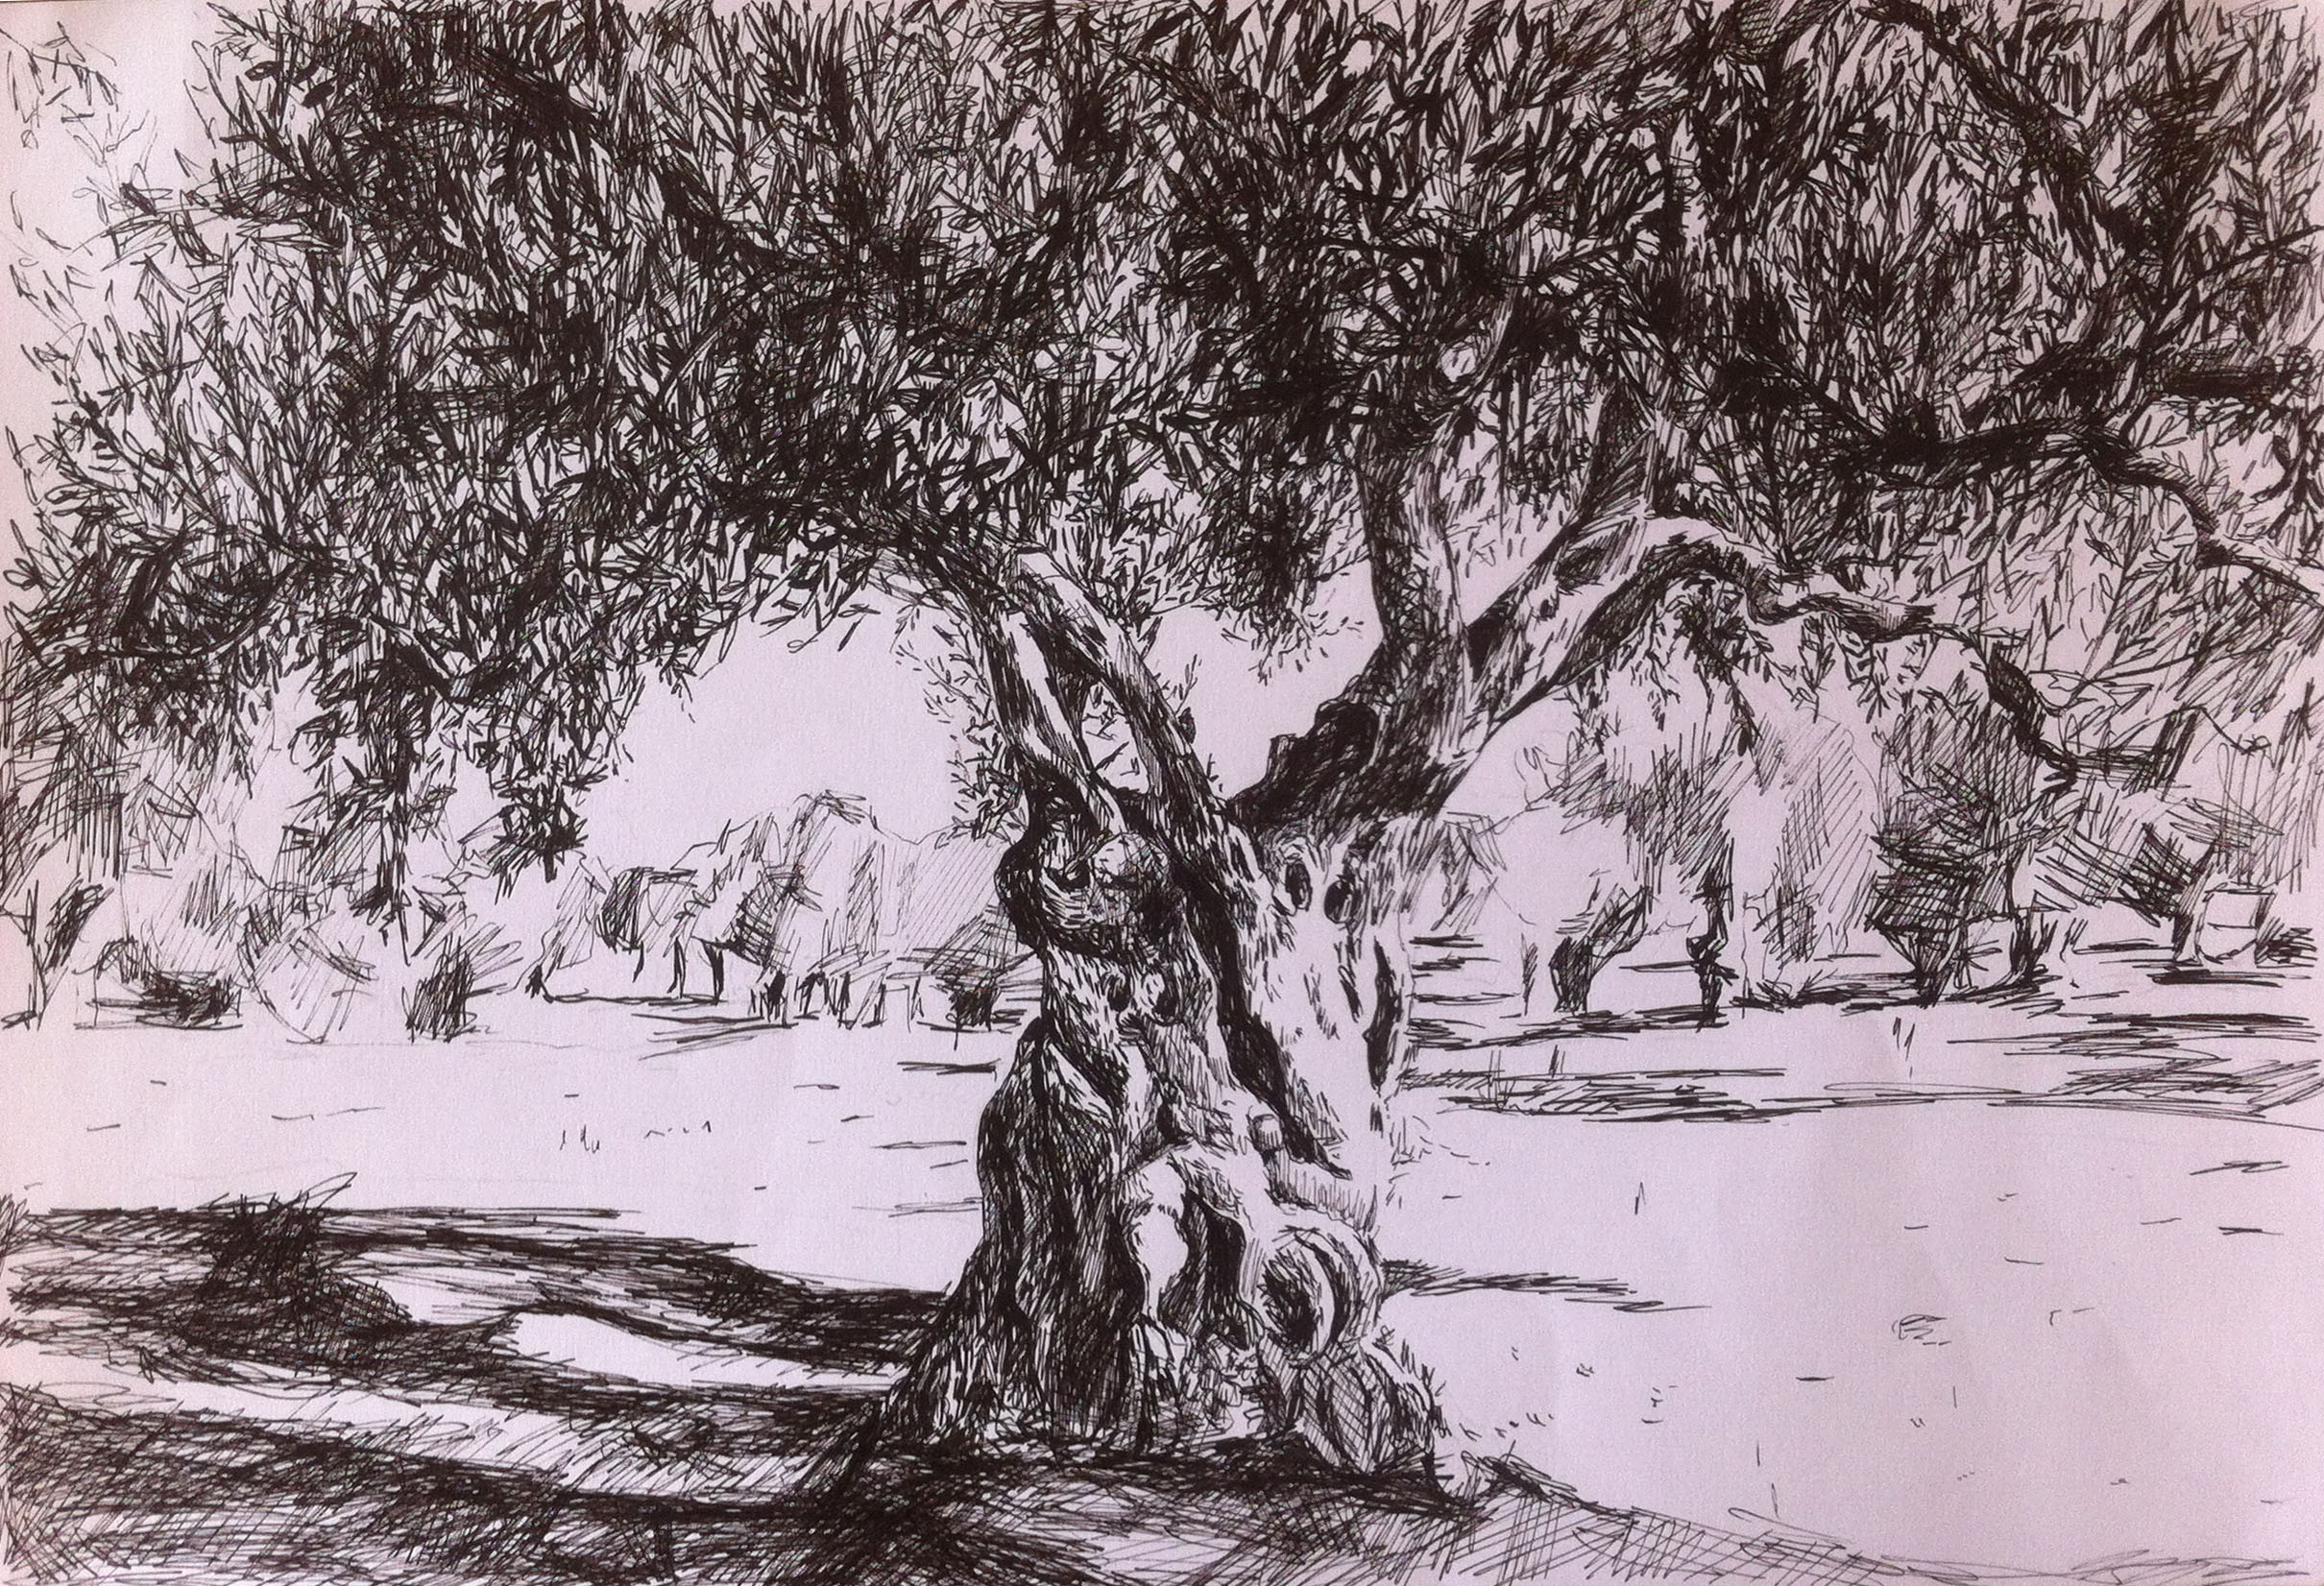 How to draw a shaded tree with landscape for beginners ... |Tree Landscape Drawing